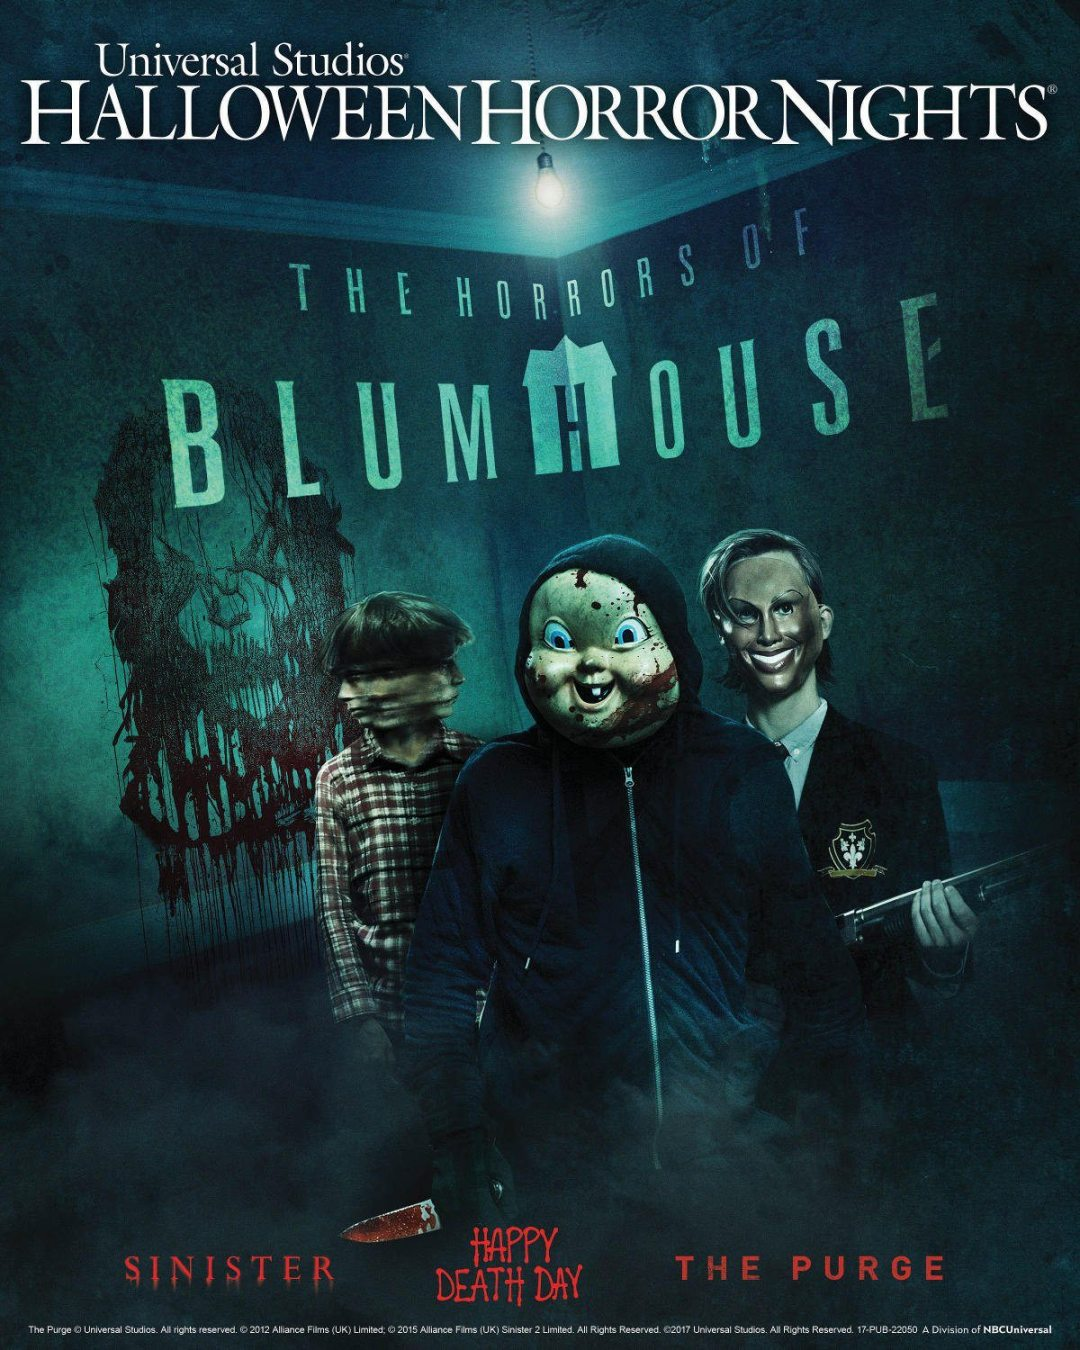 'The Horrors of Blumhouse' is Coming to This Year's Halloween Horror Nights!